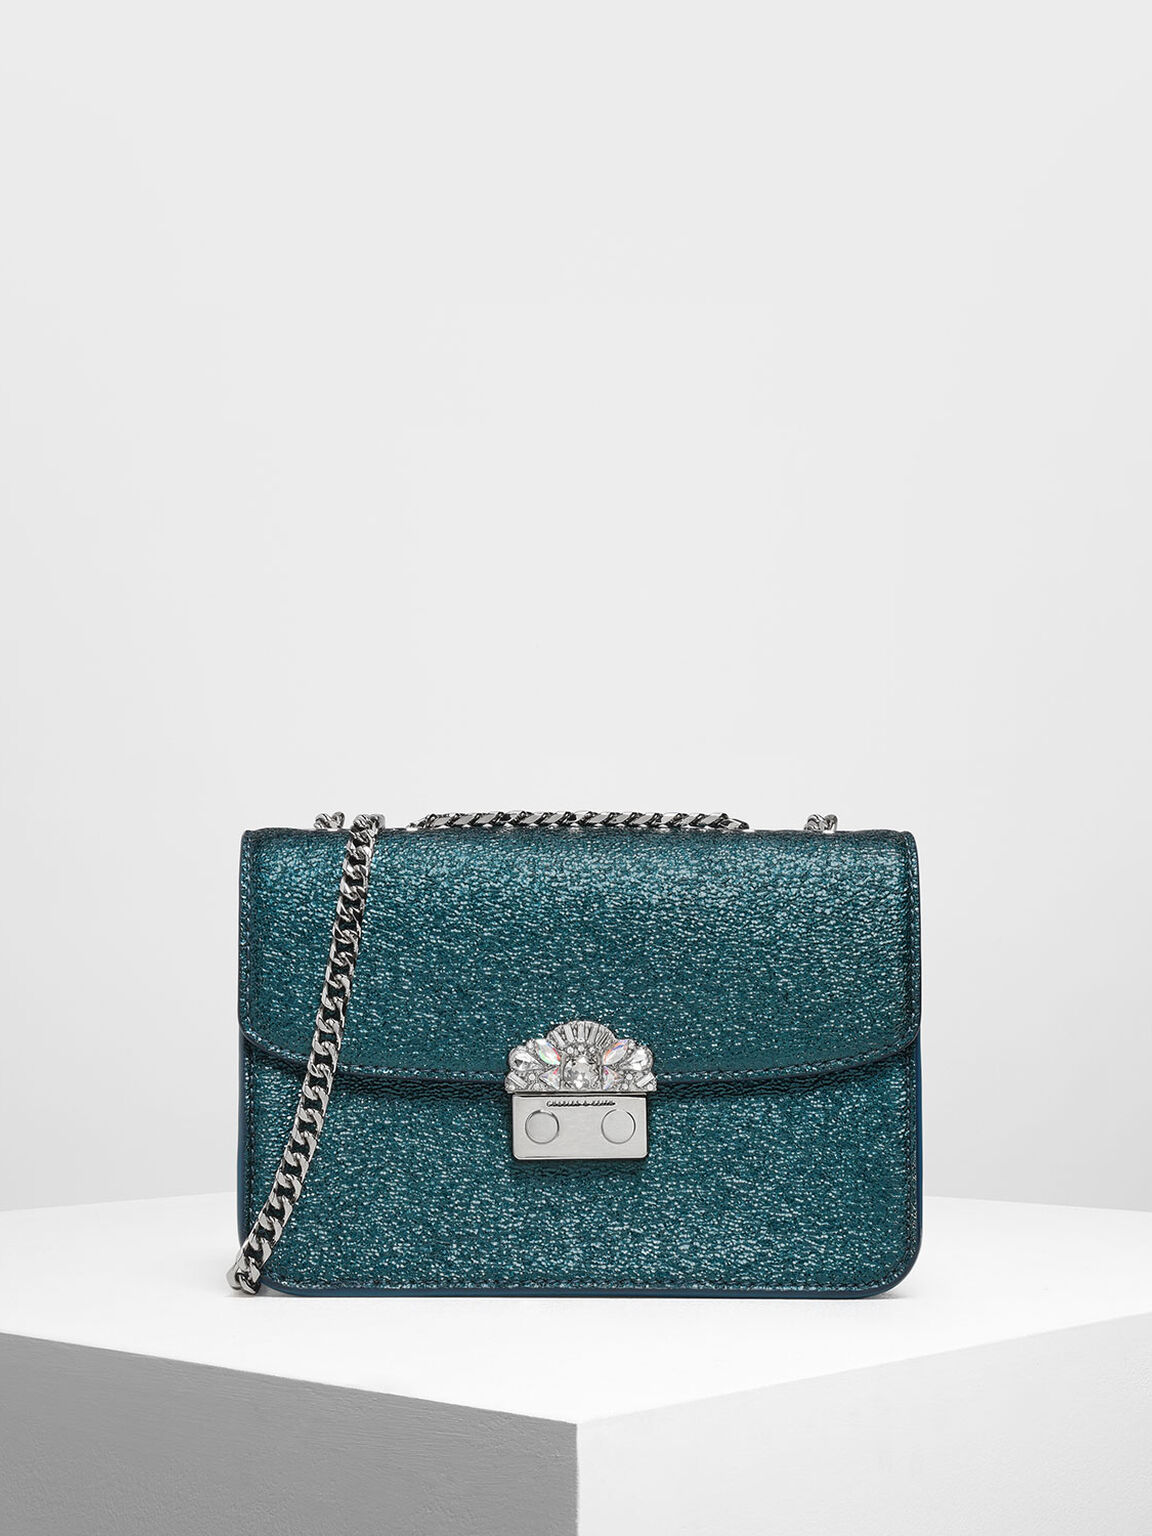 Embellished Push Lock Metallic Clutch, Green, hi-res